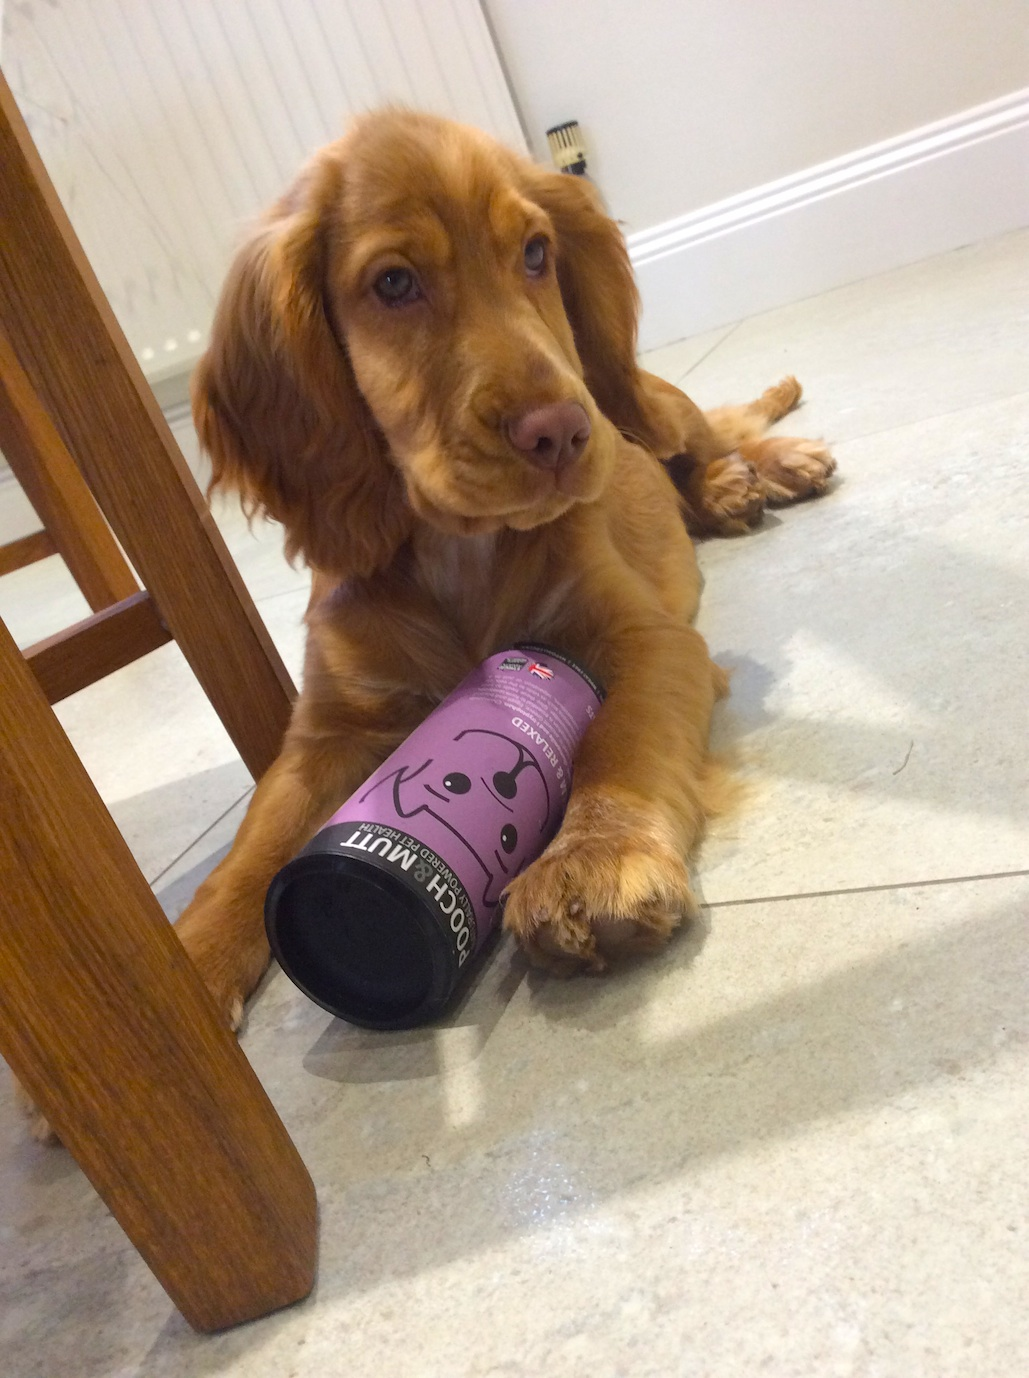 barney the dog sitting with a tube of pooch & mutt treats